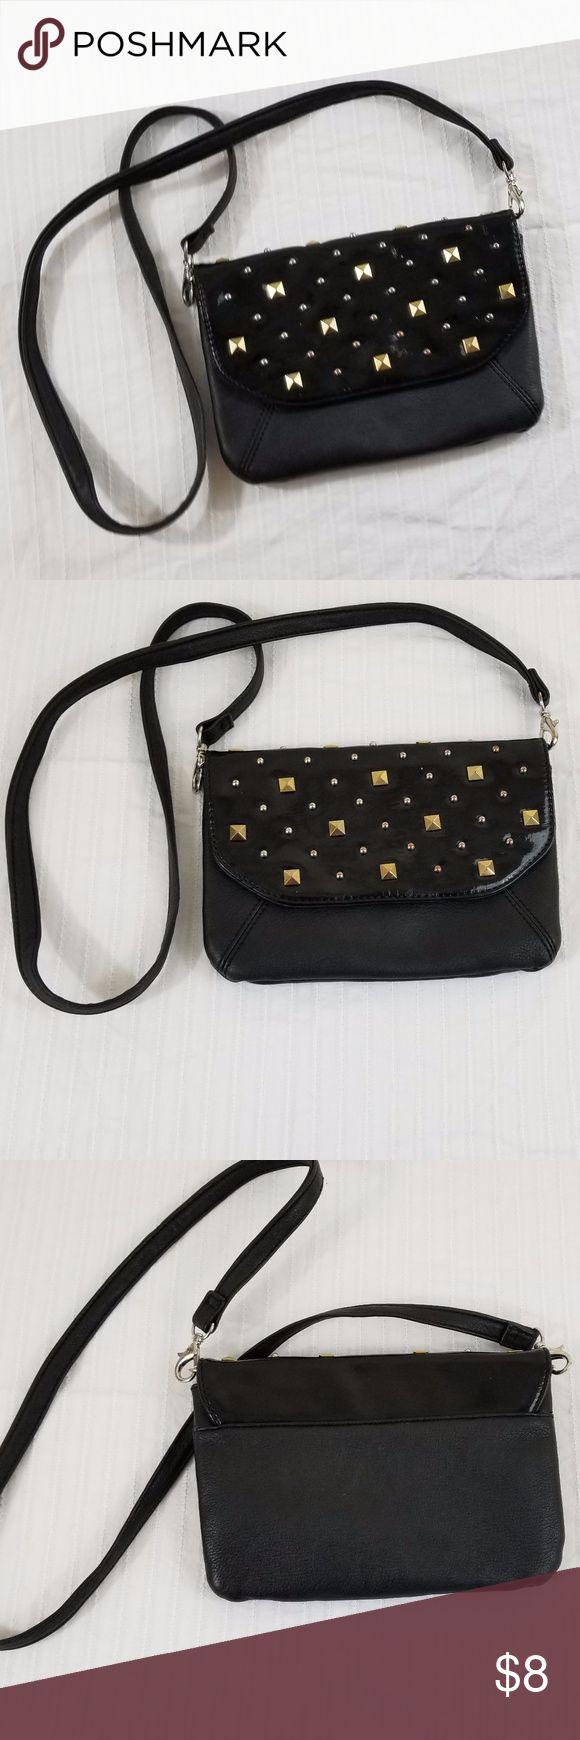 "Grace Adele Small Handbag Grace Adele Small Handbag with Studded Accents Good used condition Some minor wear and some light discoloration on inside Detachable strap so it can be used as a strap Purse Measurements : 9 x 6.25 "" Entire length of strap 44"" Grace Adele Bags"